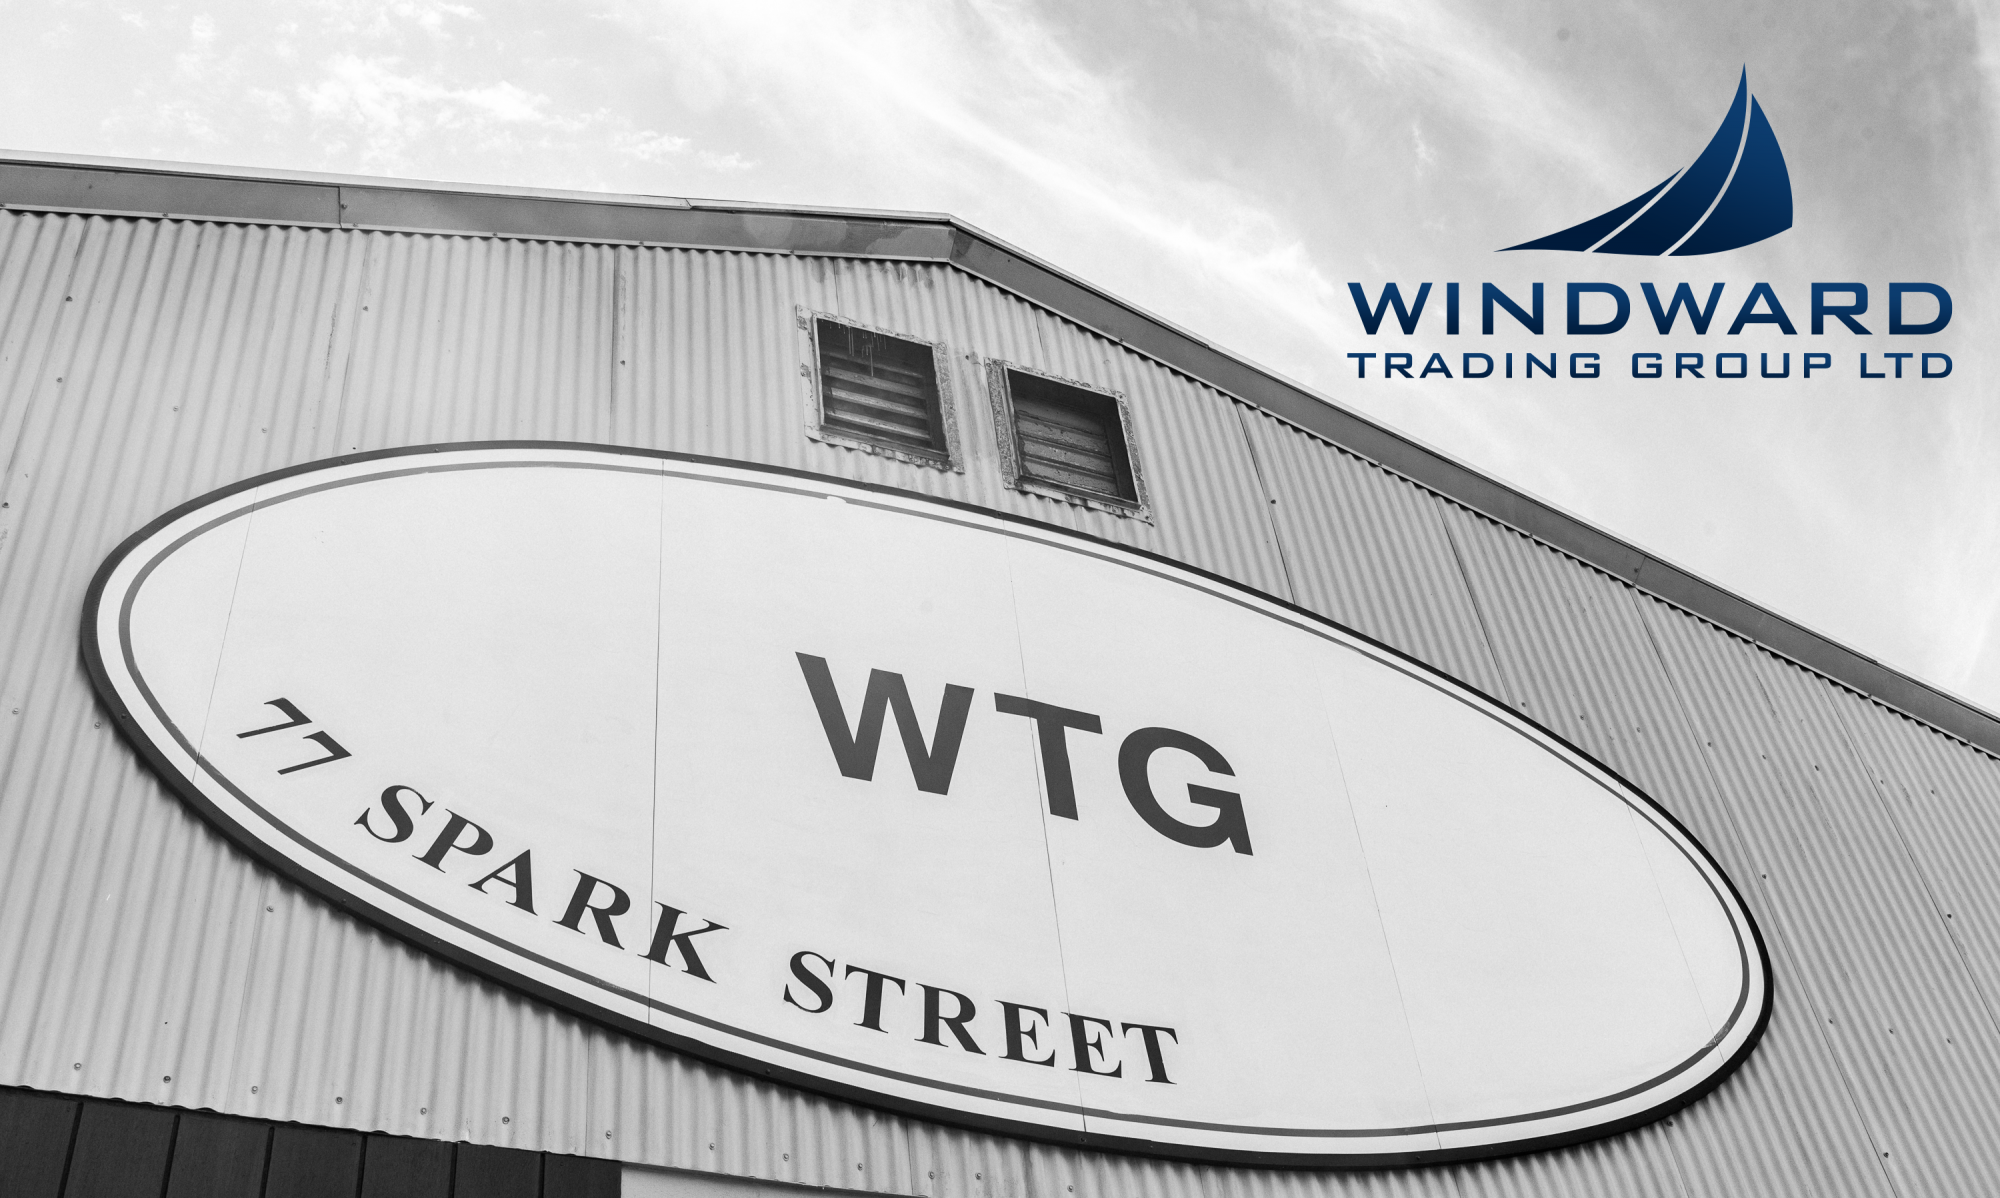 Windward Trading Group